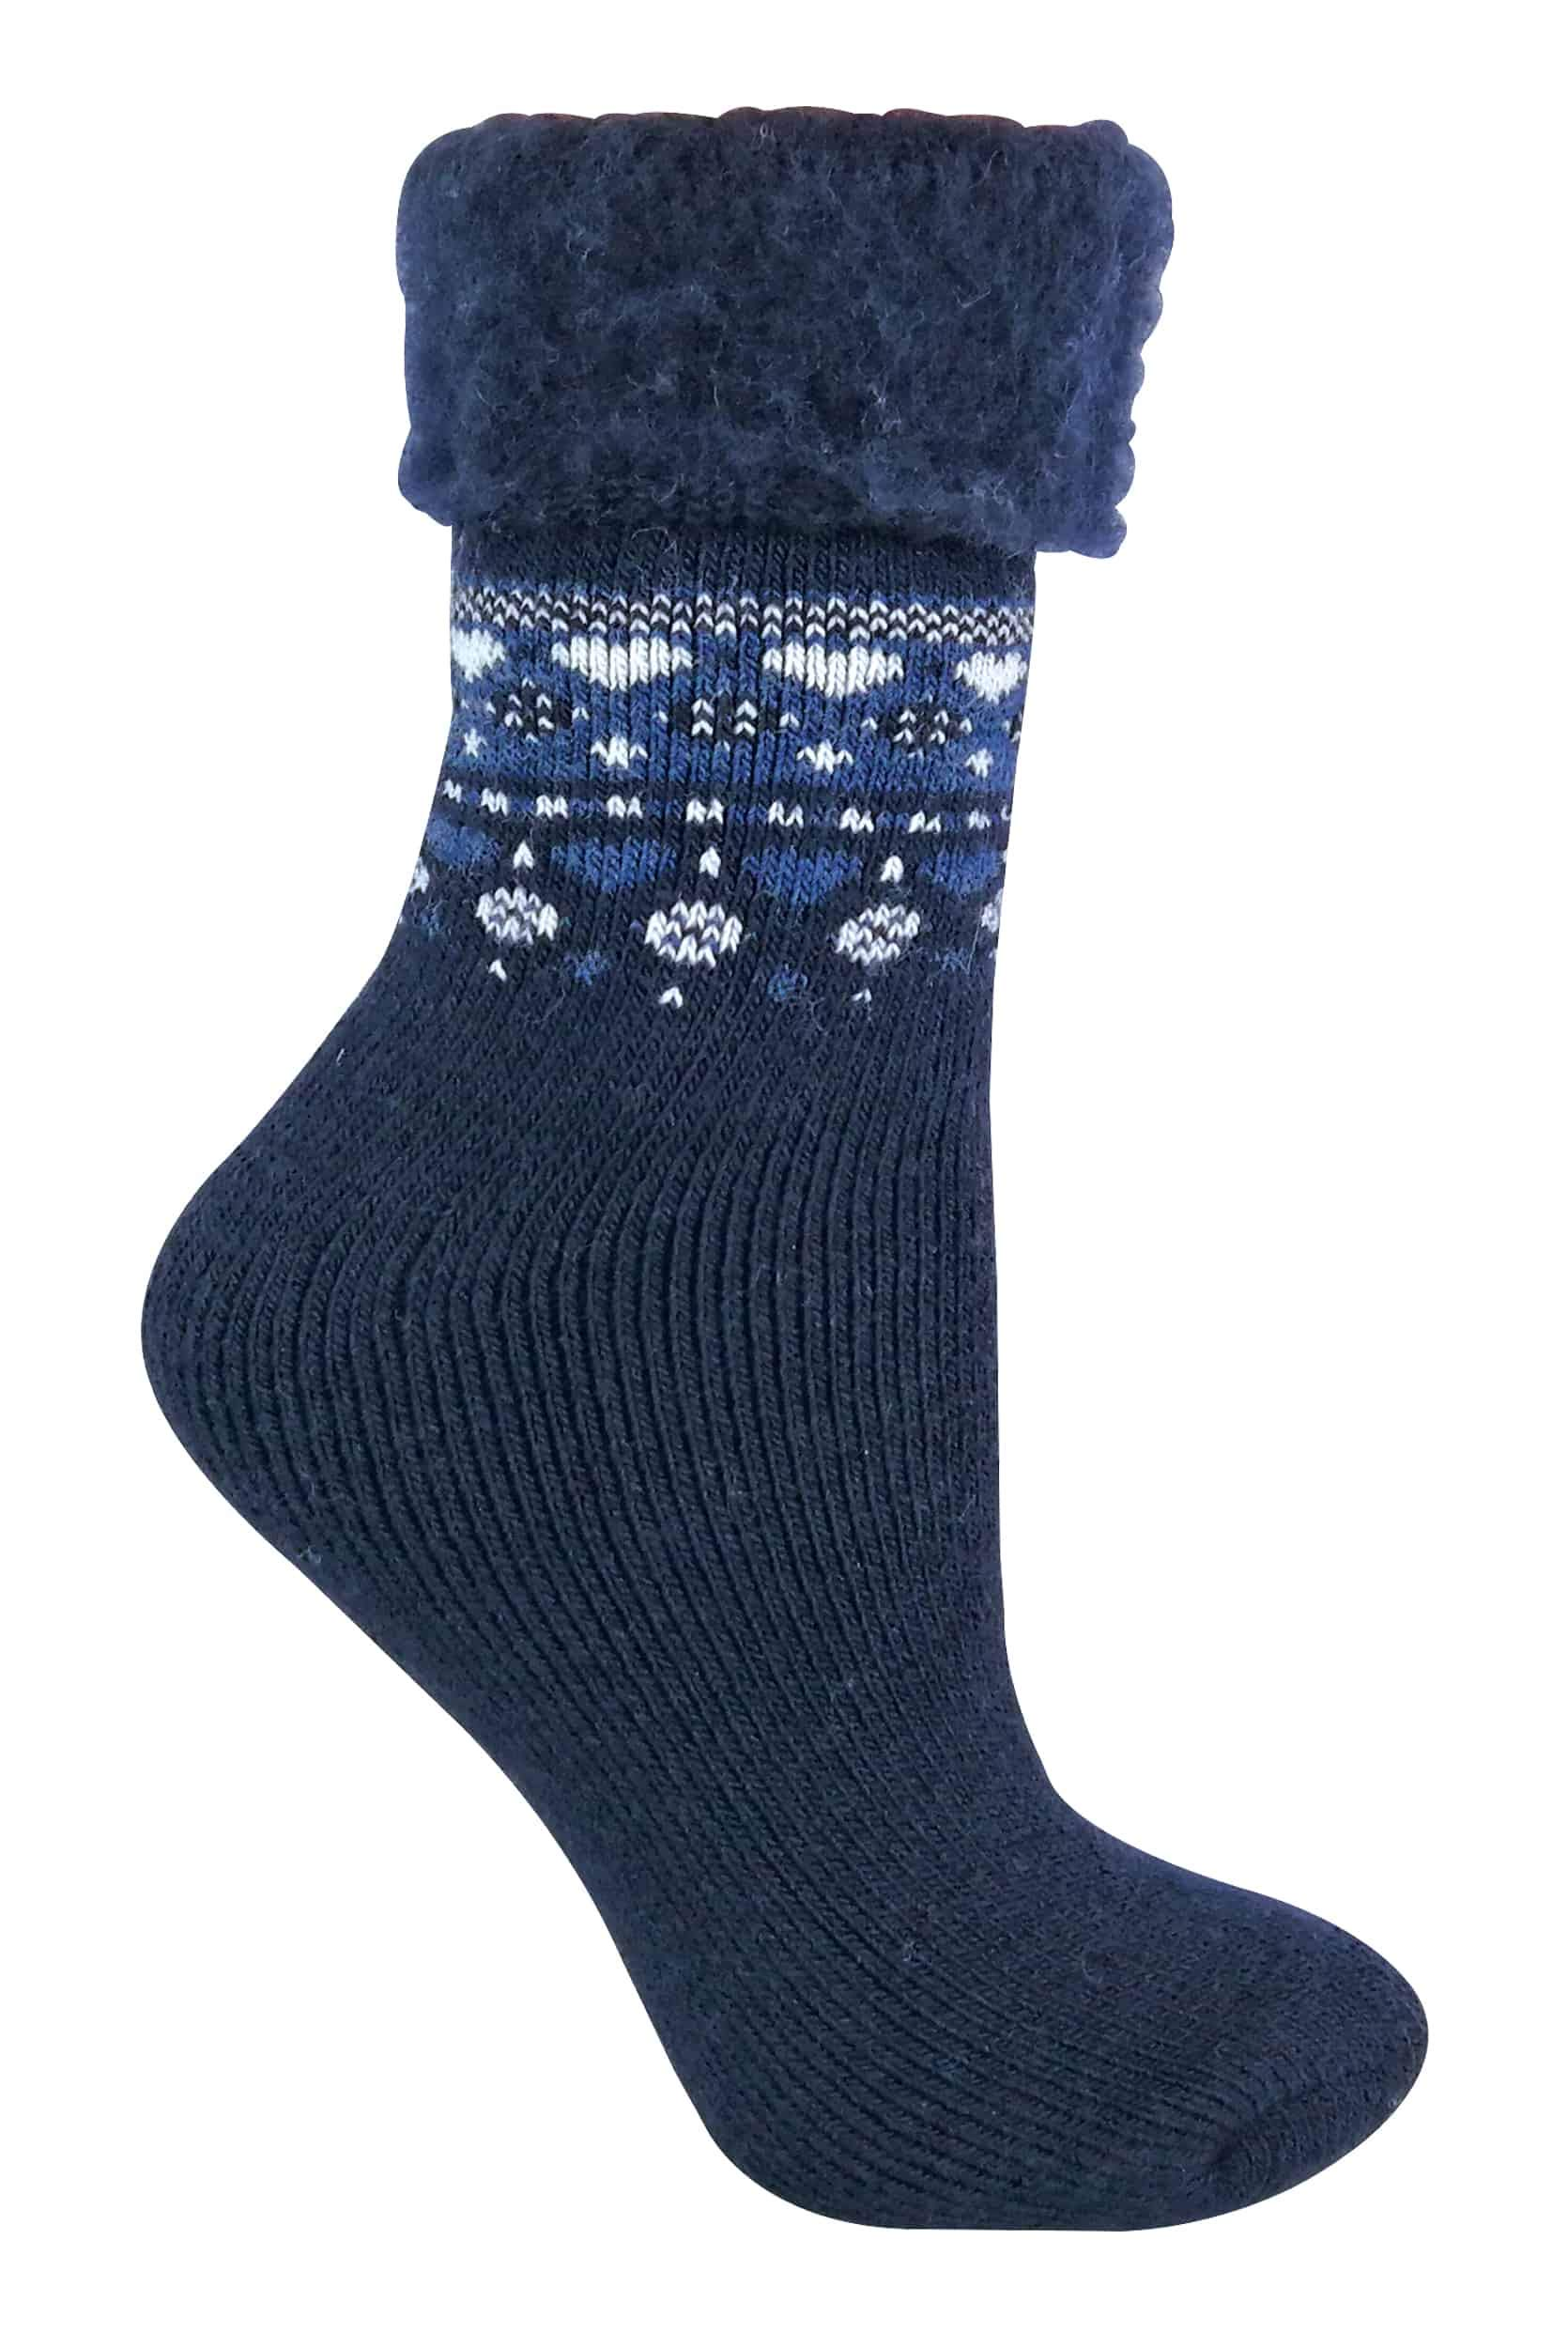 Womens Soft Cozy Vintage Winter Thermal Wool Blend Bed Socks for Cold Feet (5-9 US, 14 Indigo)